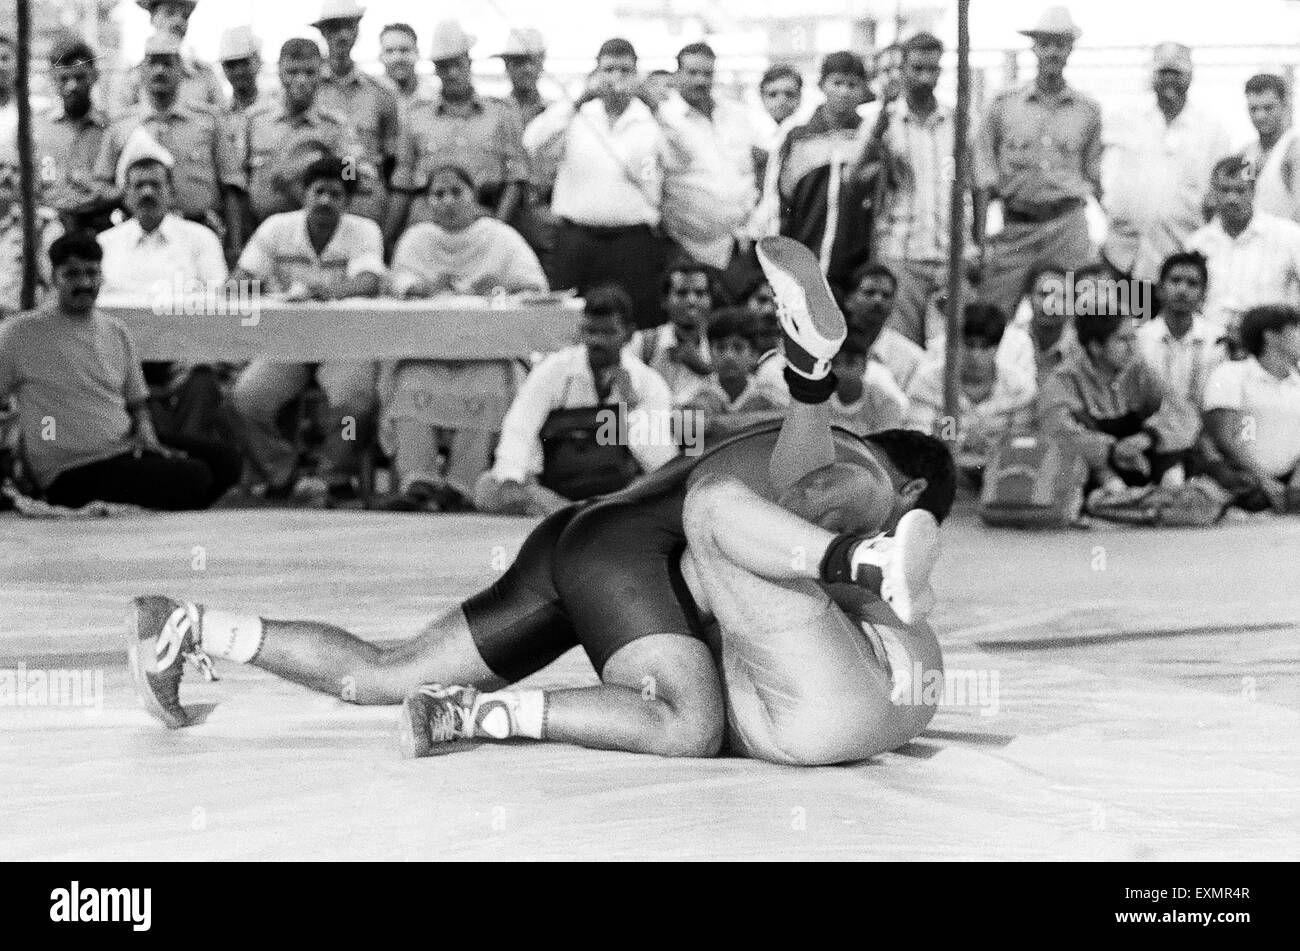 All India competition of wrestling held in Mysore during the Dussera celebrations Karnataka India 2007 - Stock Image